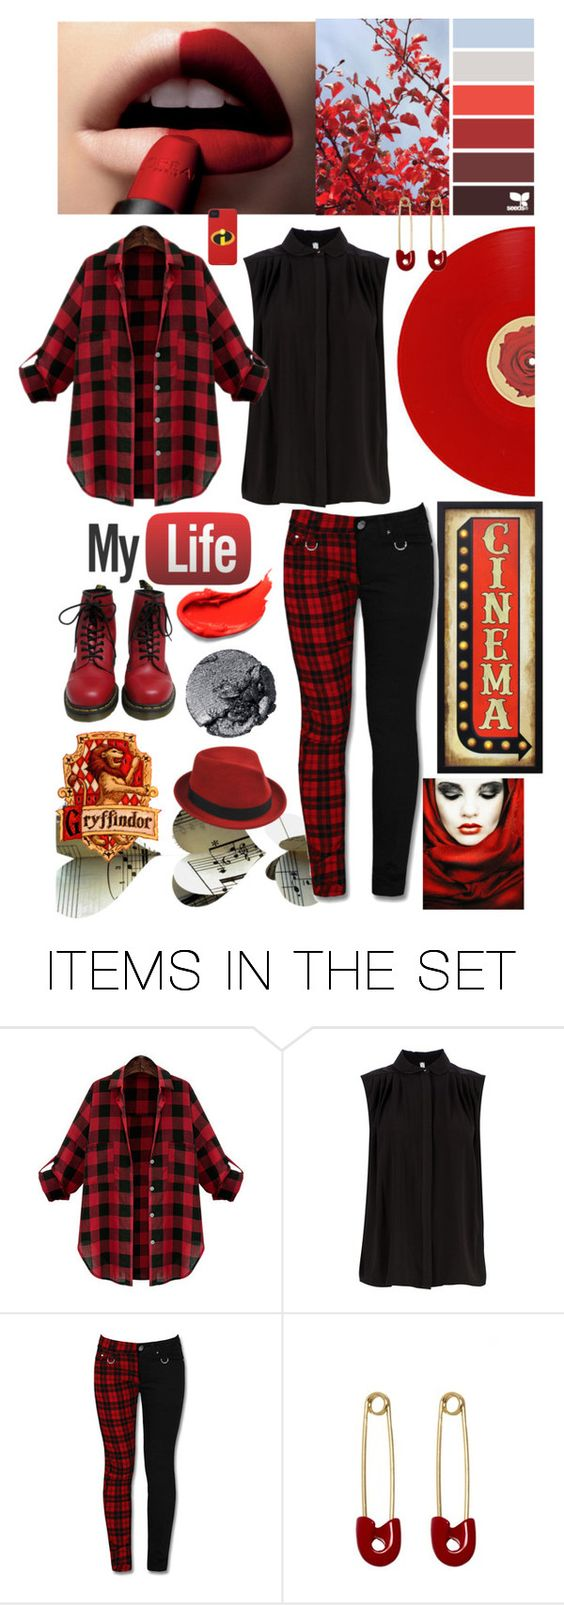 """bordo red rules"" by ira-andrea-potnar ❤ liked on Polyvore featuring art"